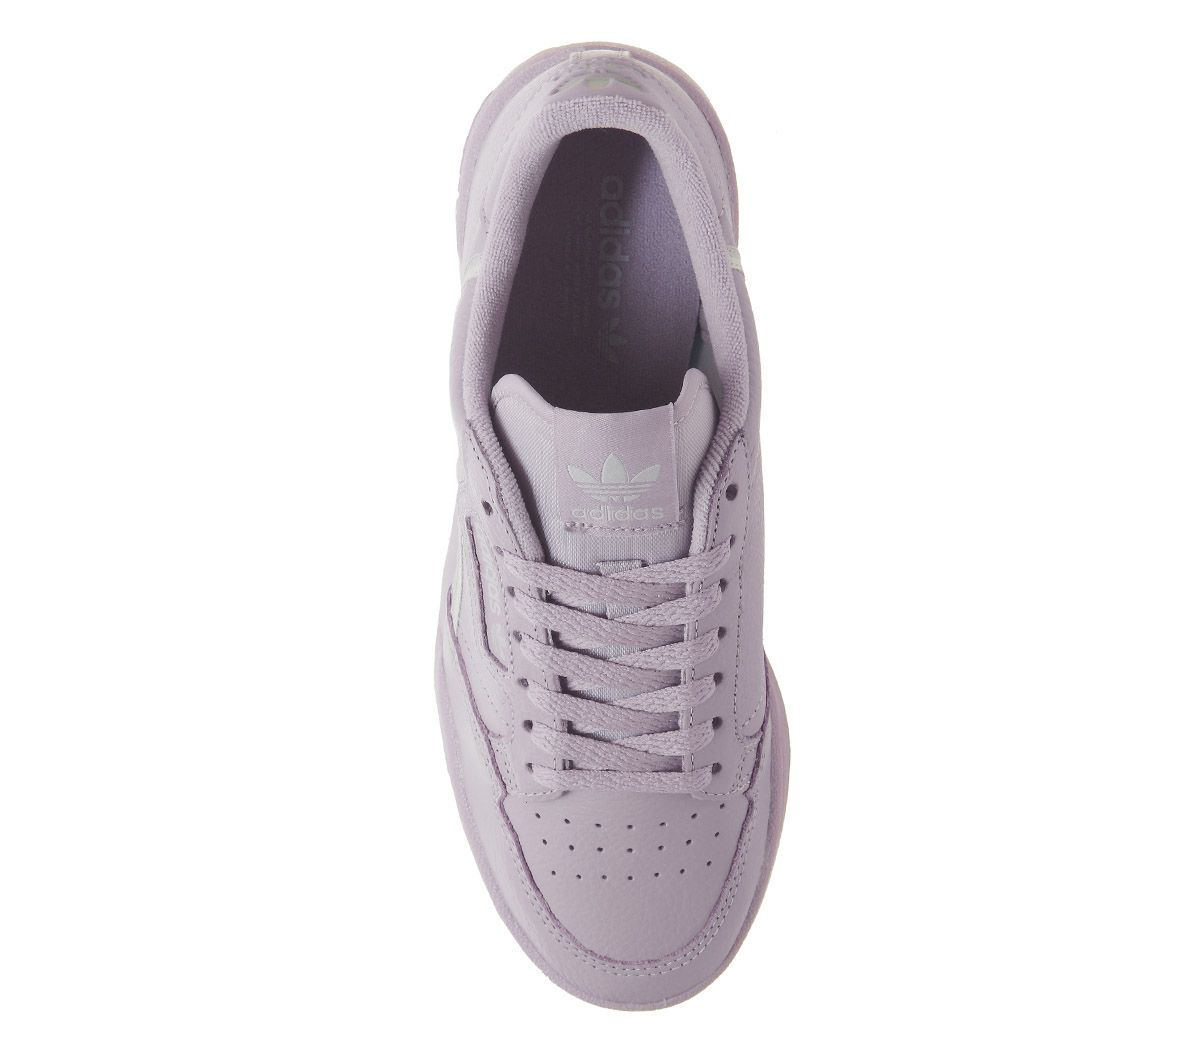 Womens Adidas 80S Continental Trainers Soft Vision Grey Trainers Shoes